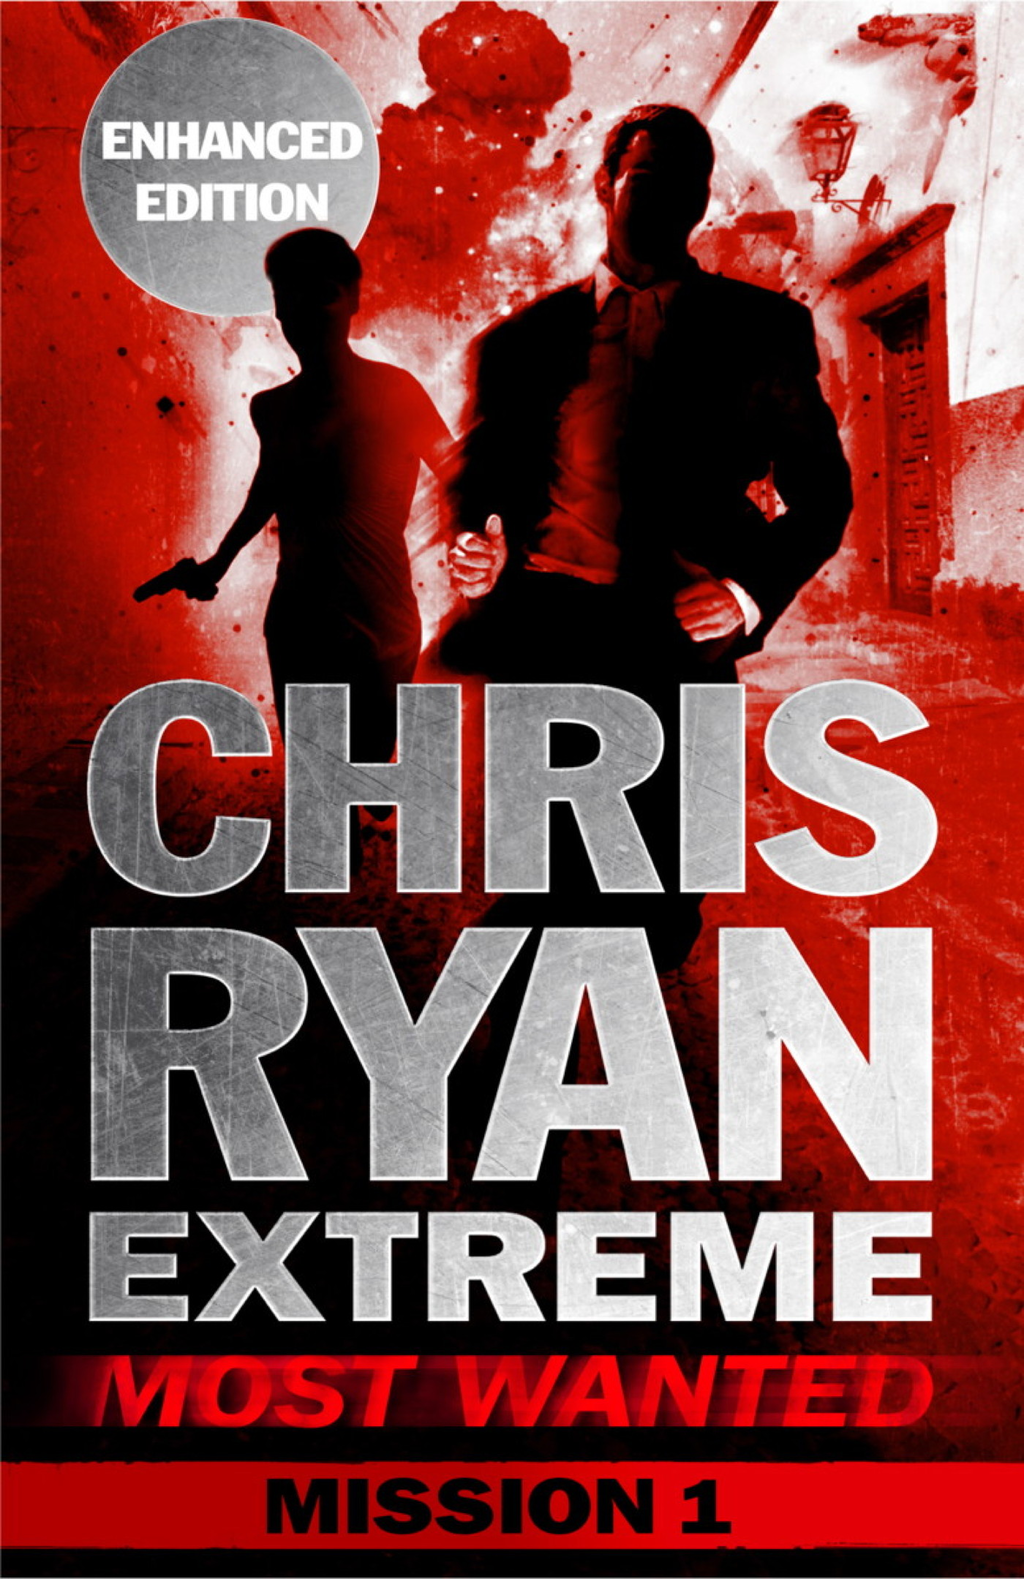 Most Wanted Mission 1 Chris Ryan Extreme Series 3